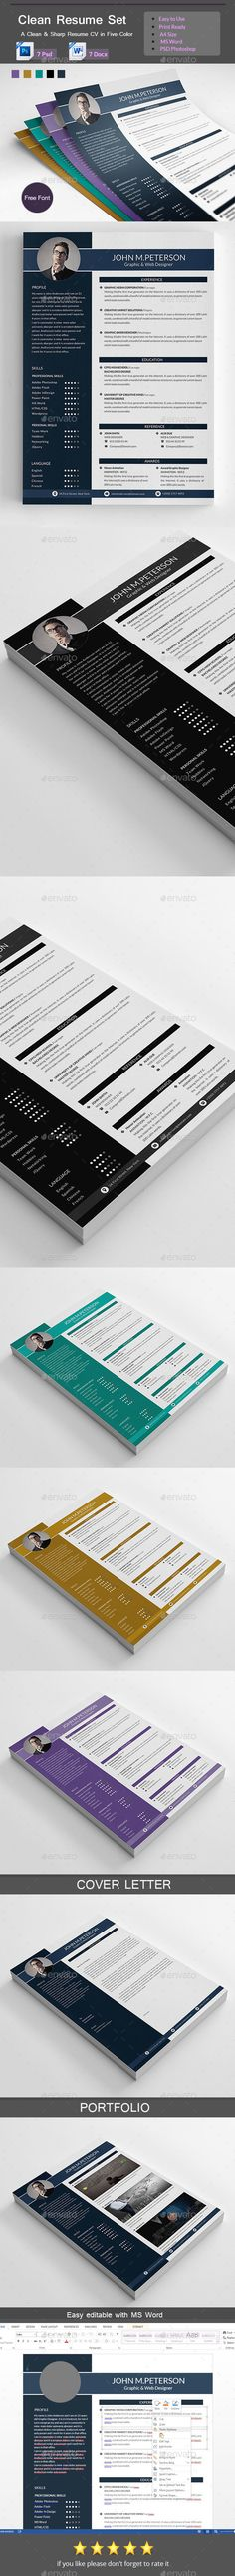 Resume Ai illustrator, Cv template and Modern resume template - resume template psd